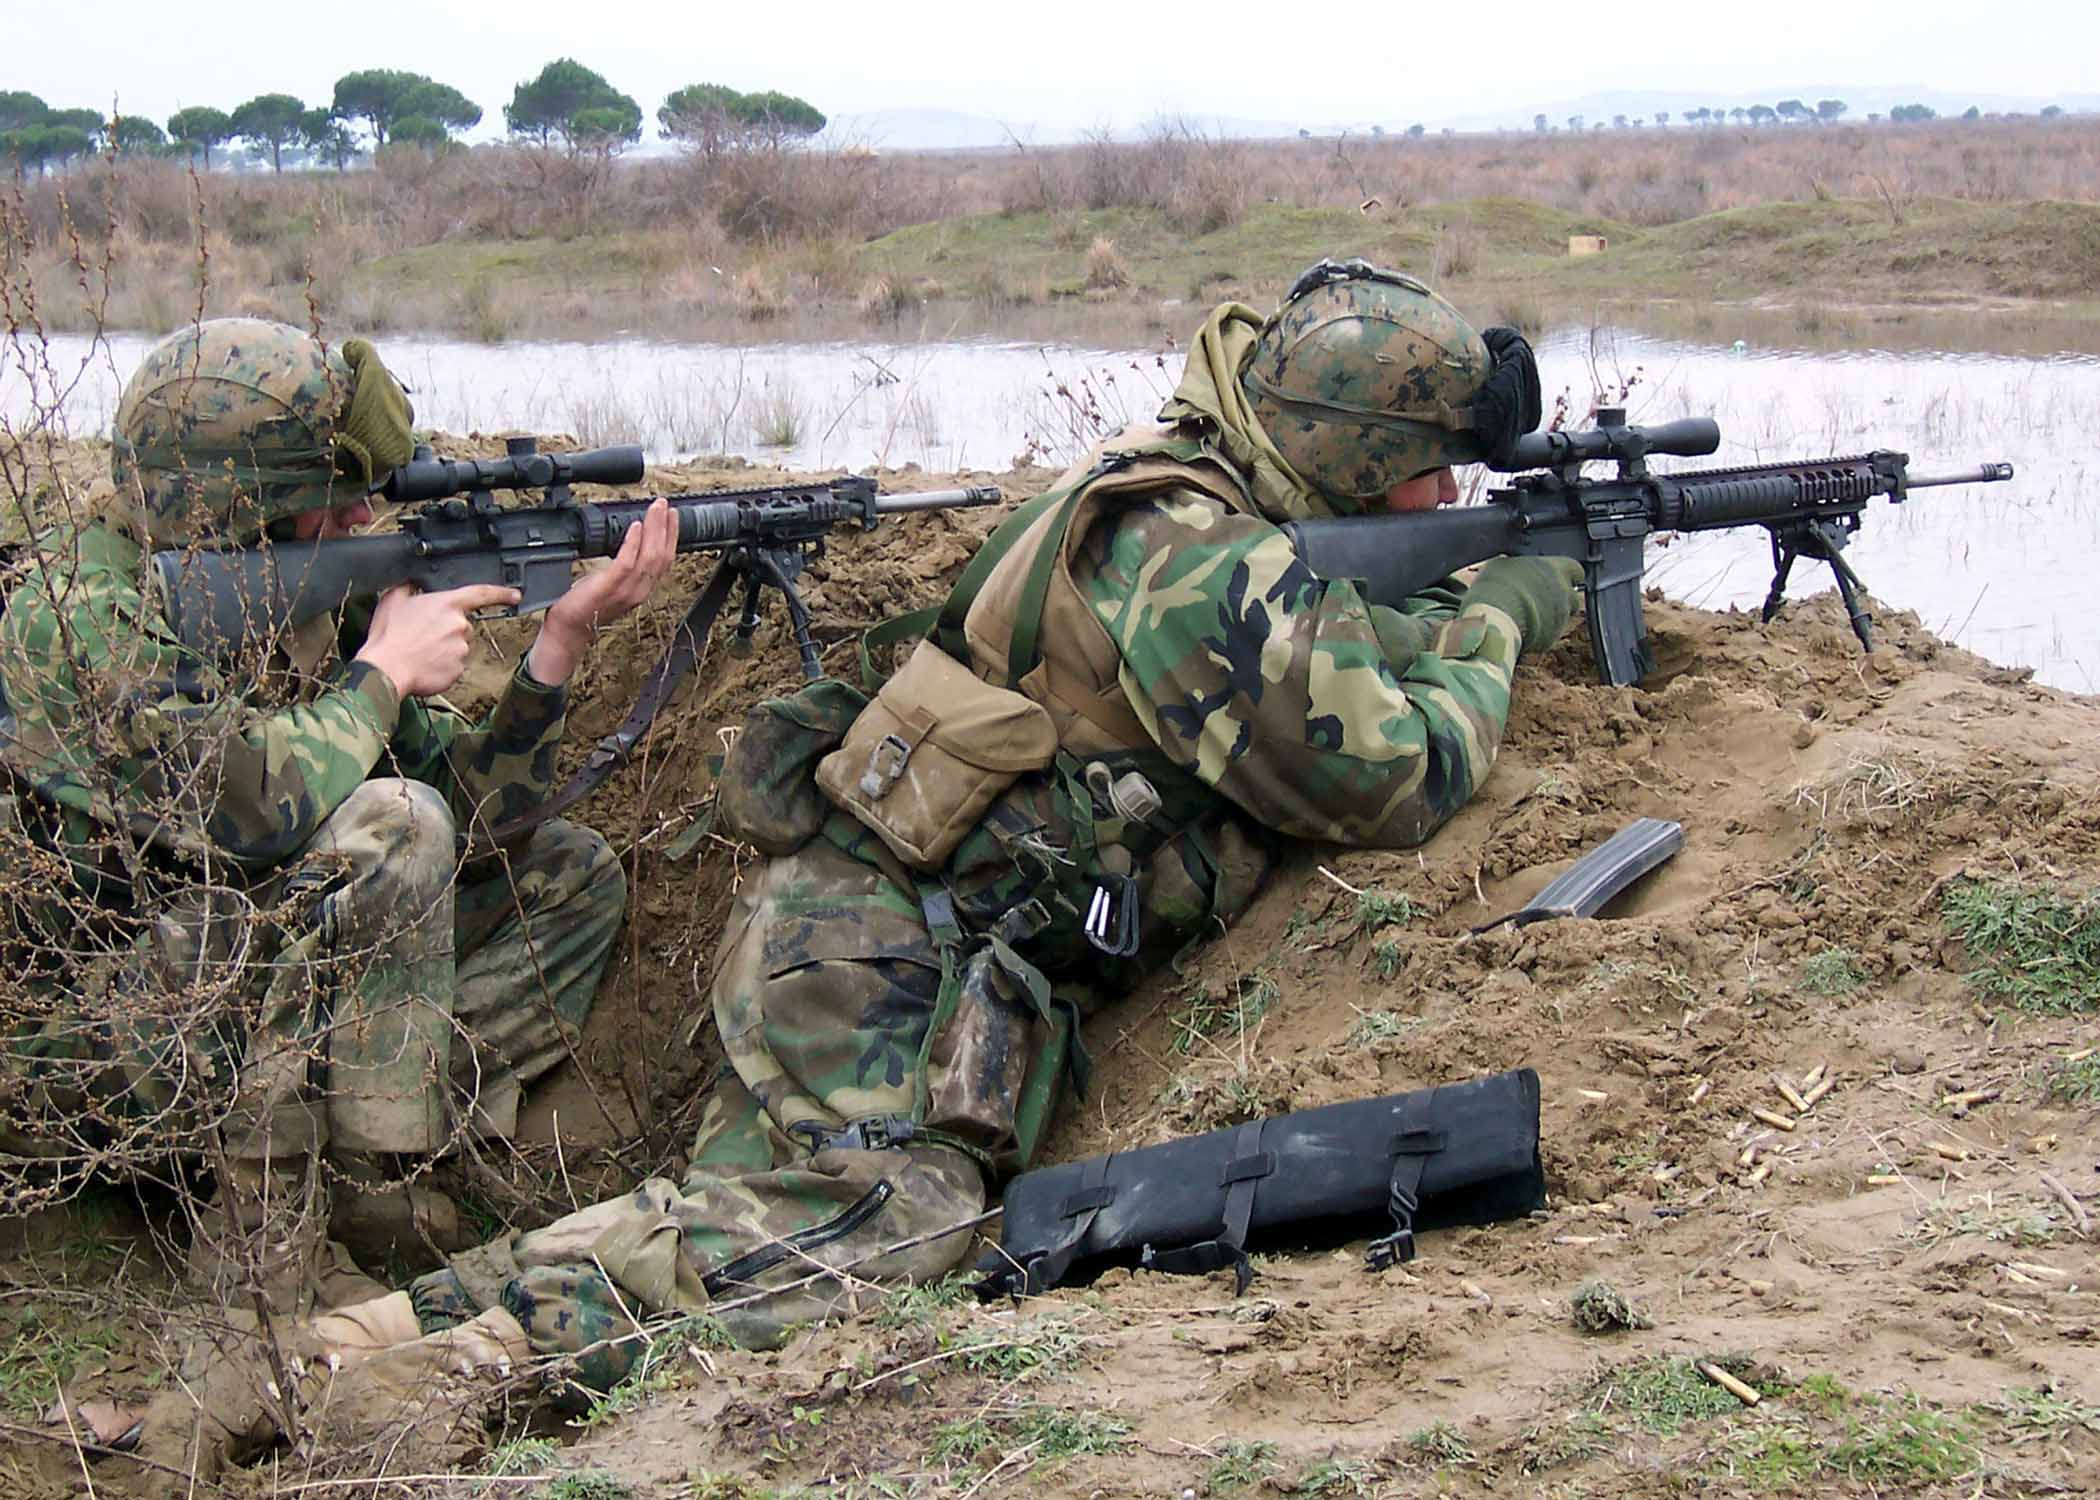 File:Marines-with-sniper-rifle-2.jpg - Wikimedia Commons